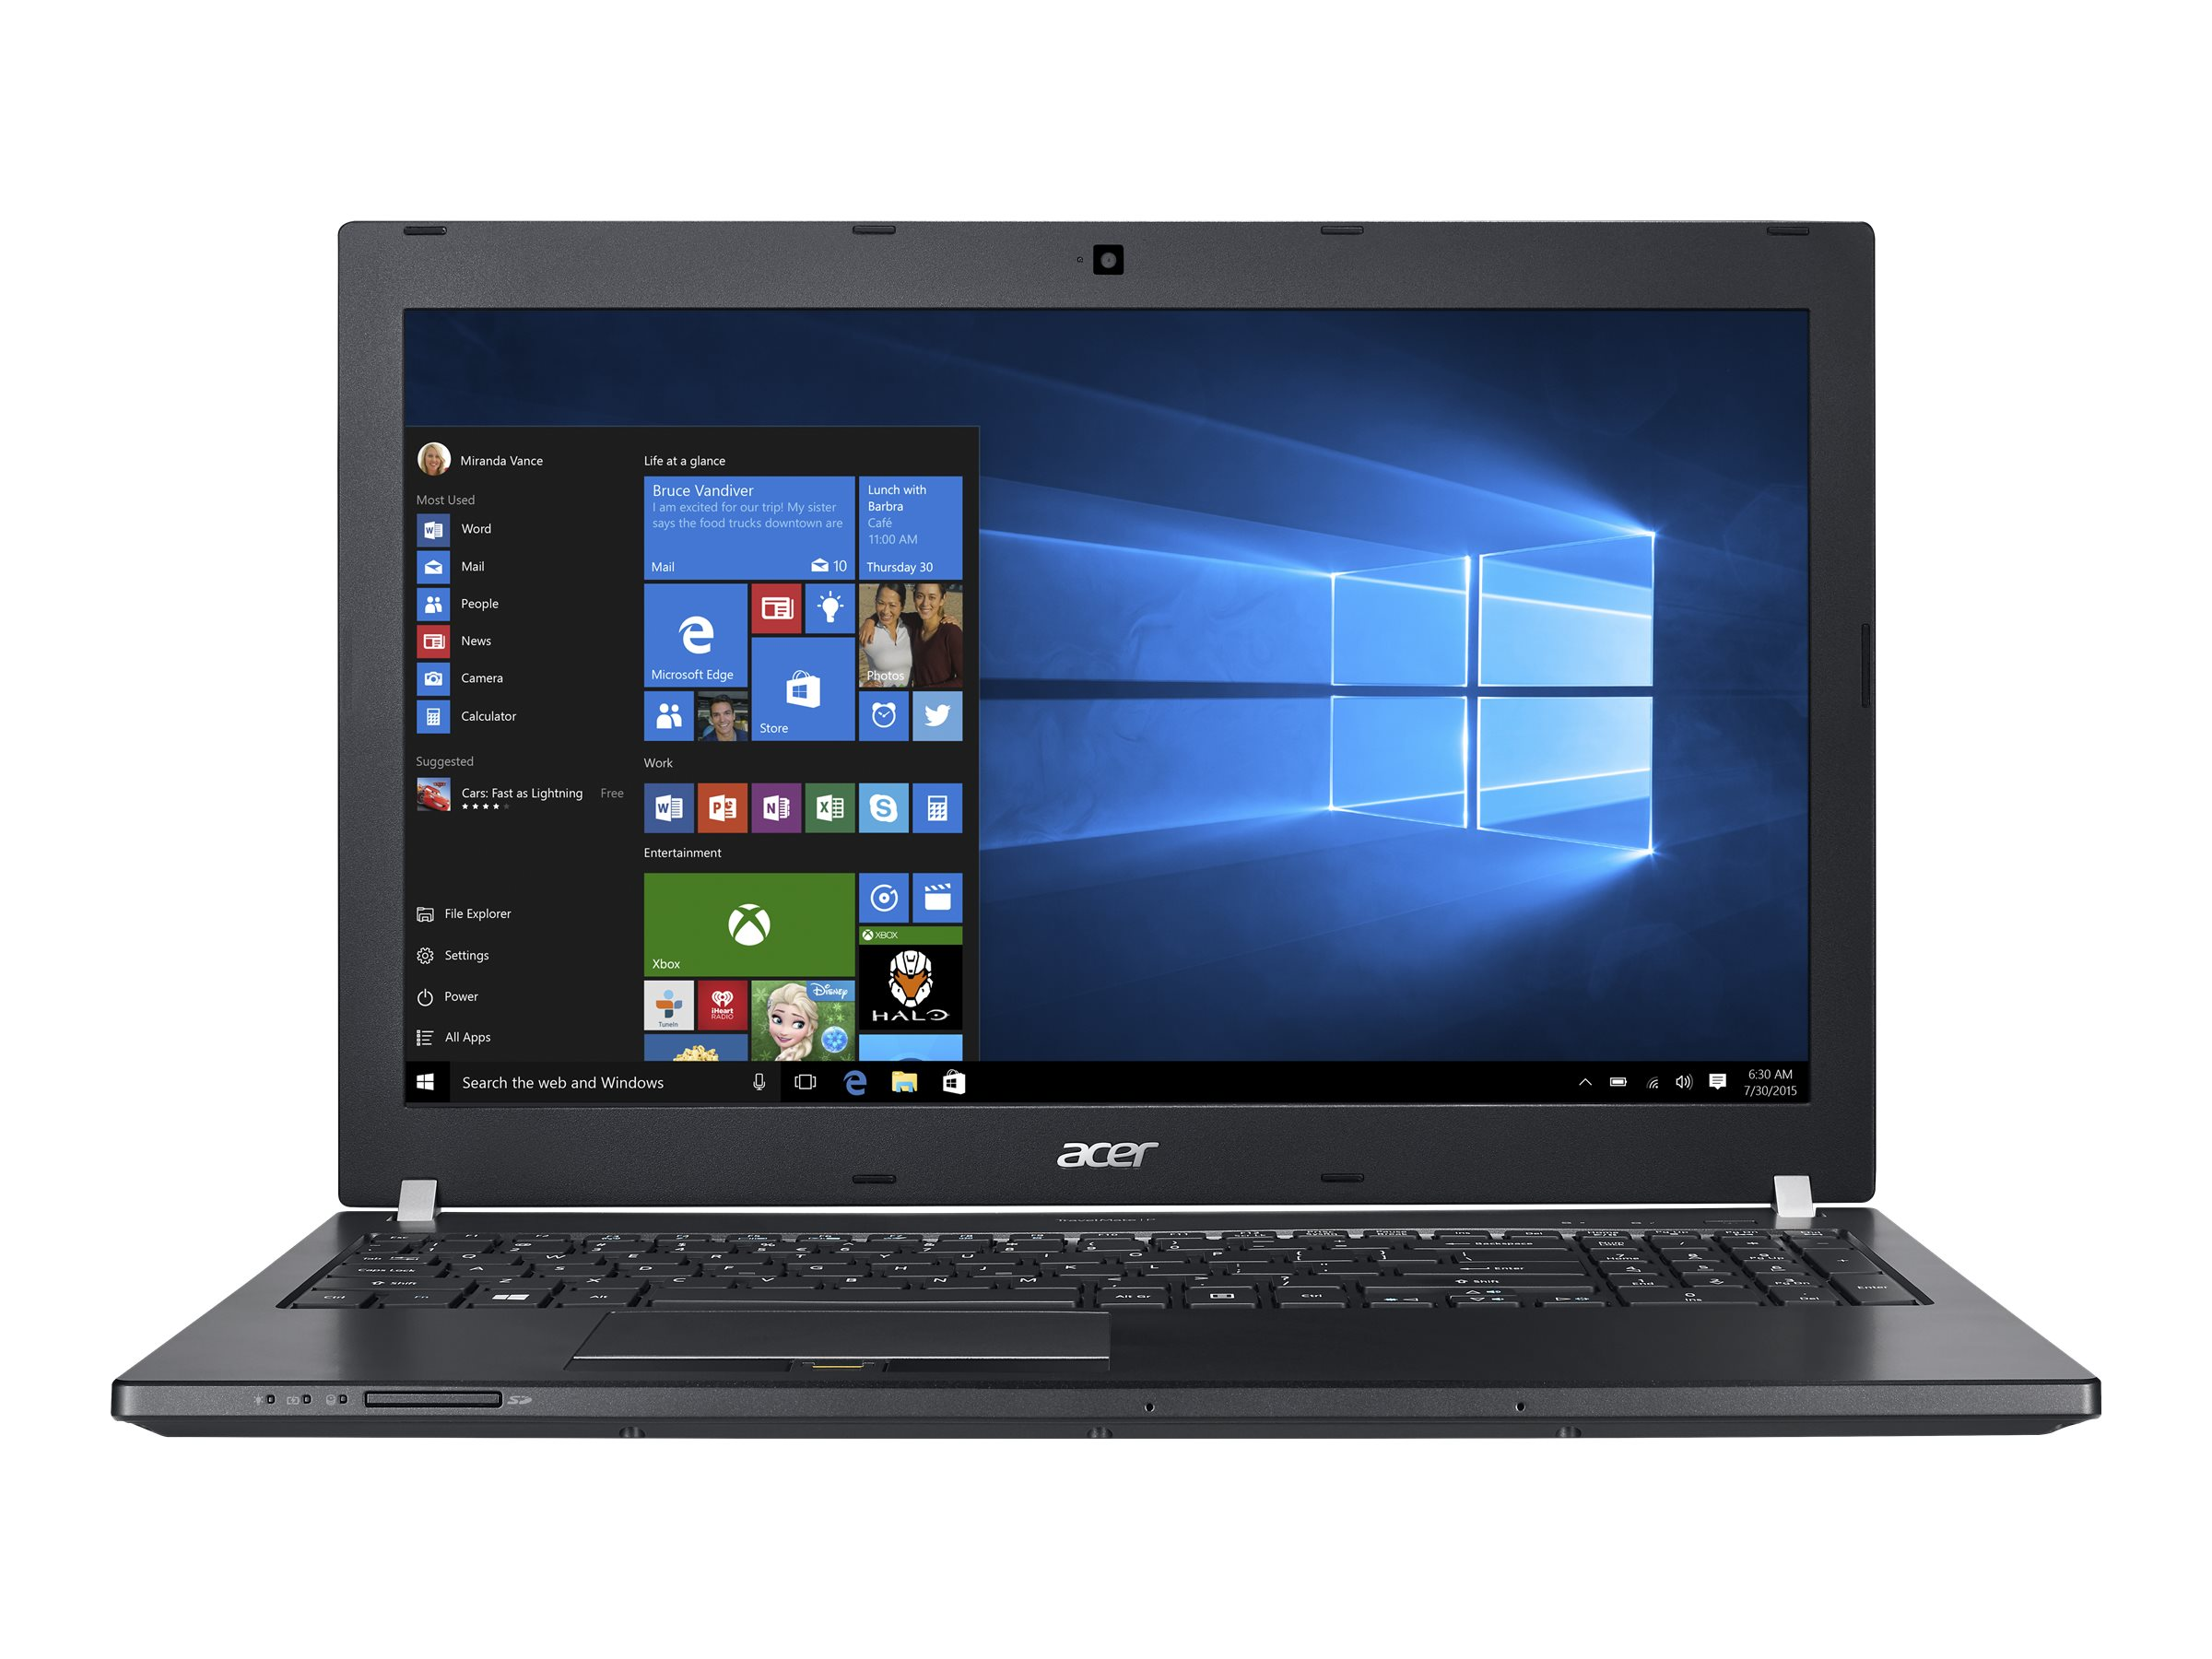 Acer Travelmate P658-M-59SY 2.3GHz Core i5 15.6in display, NX.VCVAA.002